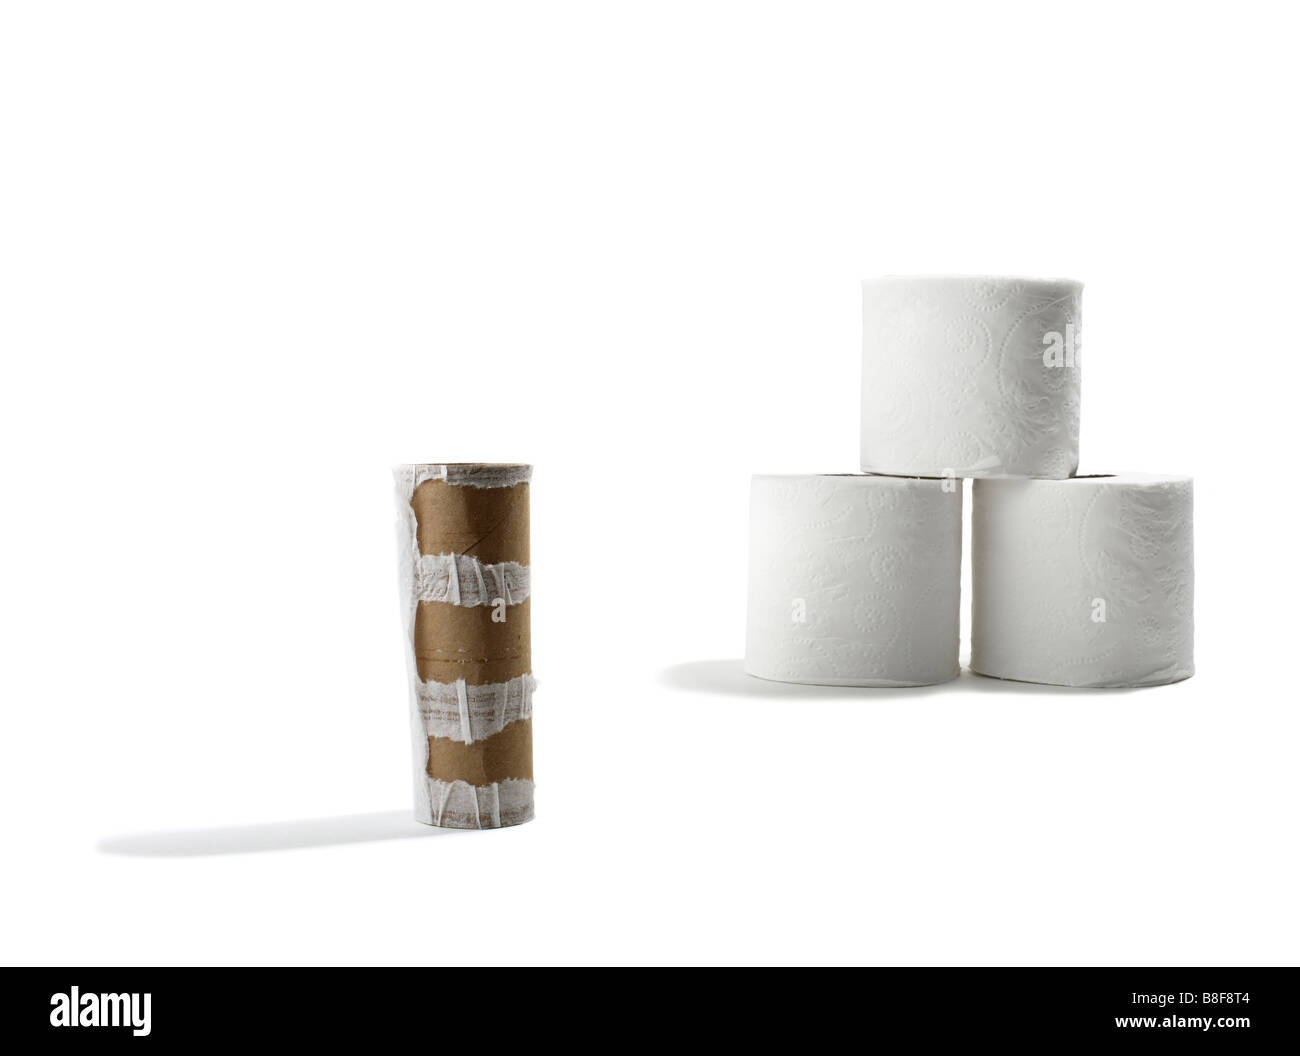 Rolls of Toilet Paper with Empty Roll in Foreground - Stock Image